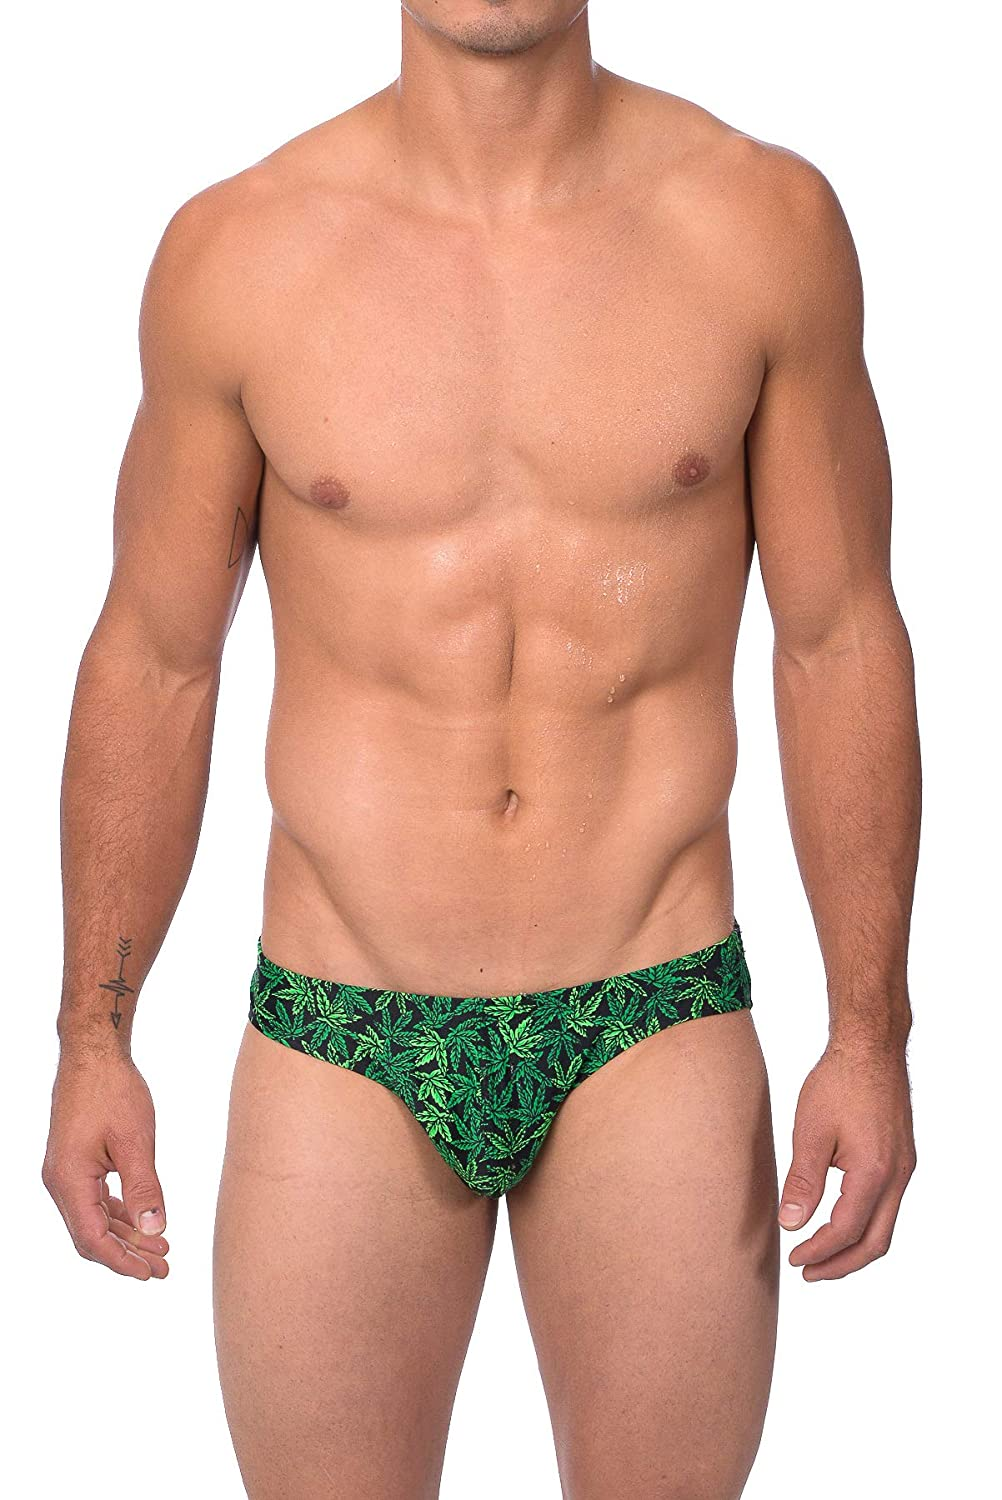 Gary Majdell Mens Rasta Marijuana Print Bikini/Boxer Brief/Thong Swimsuit